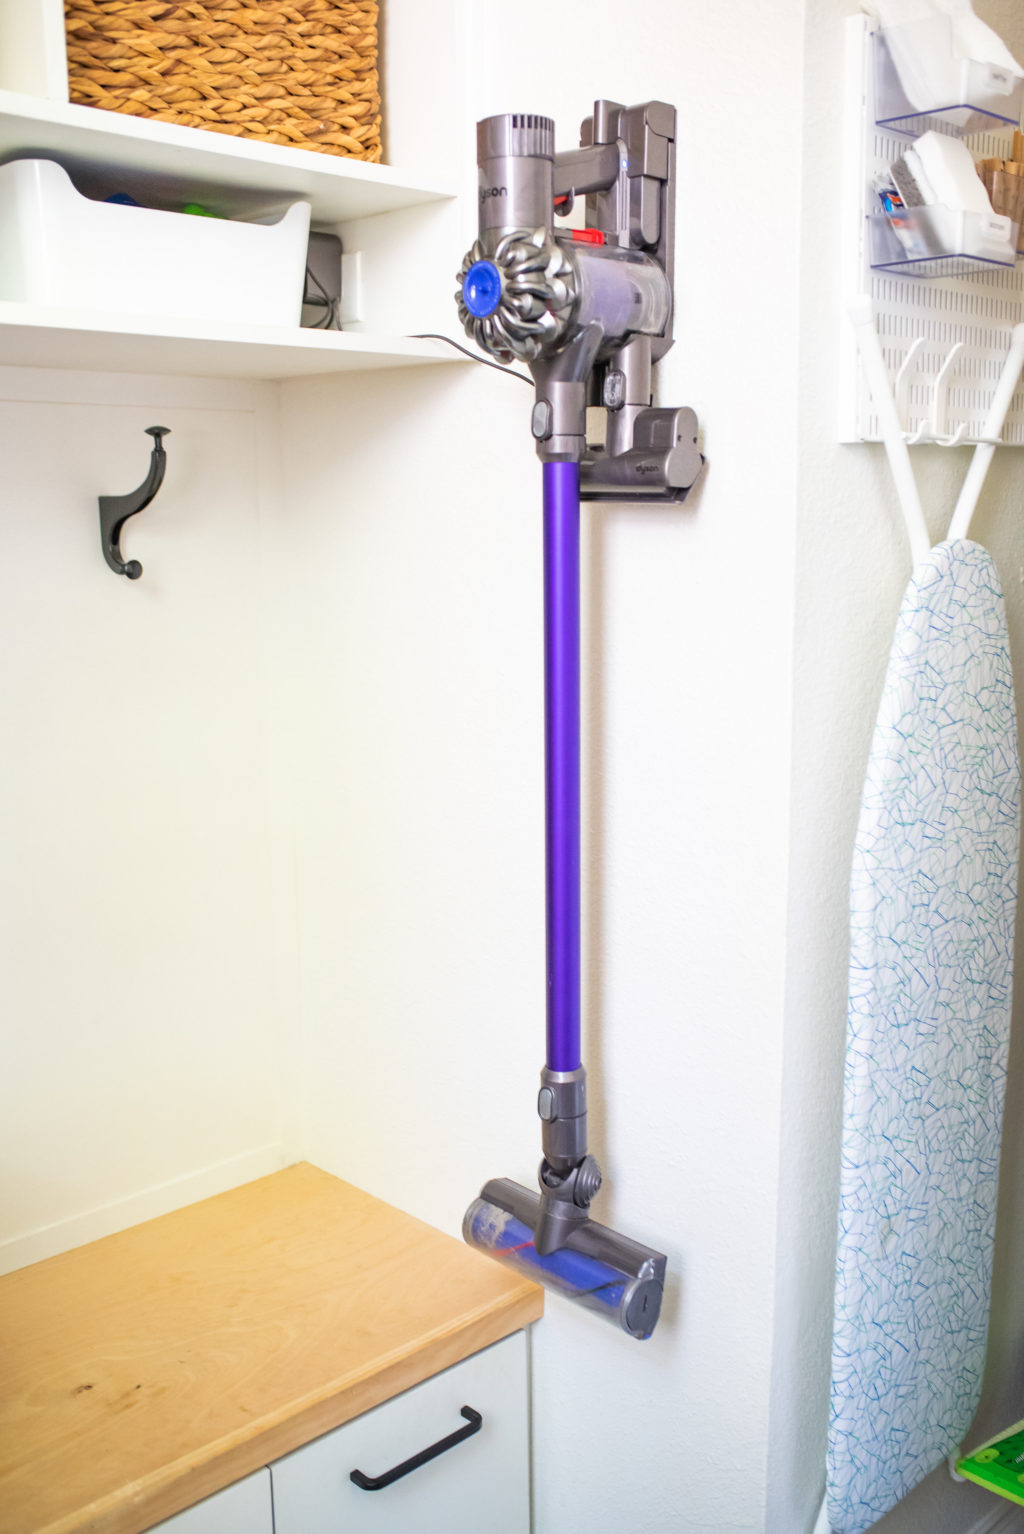 dyson stick vacuum on wall